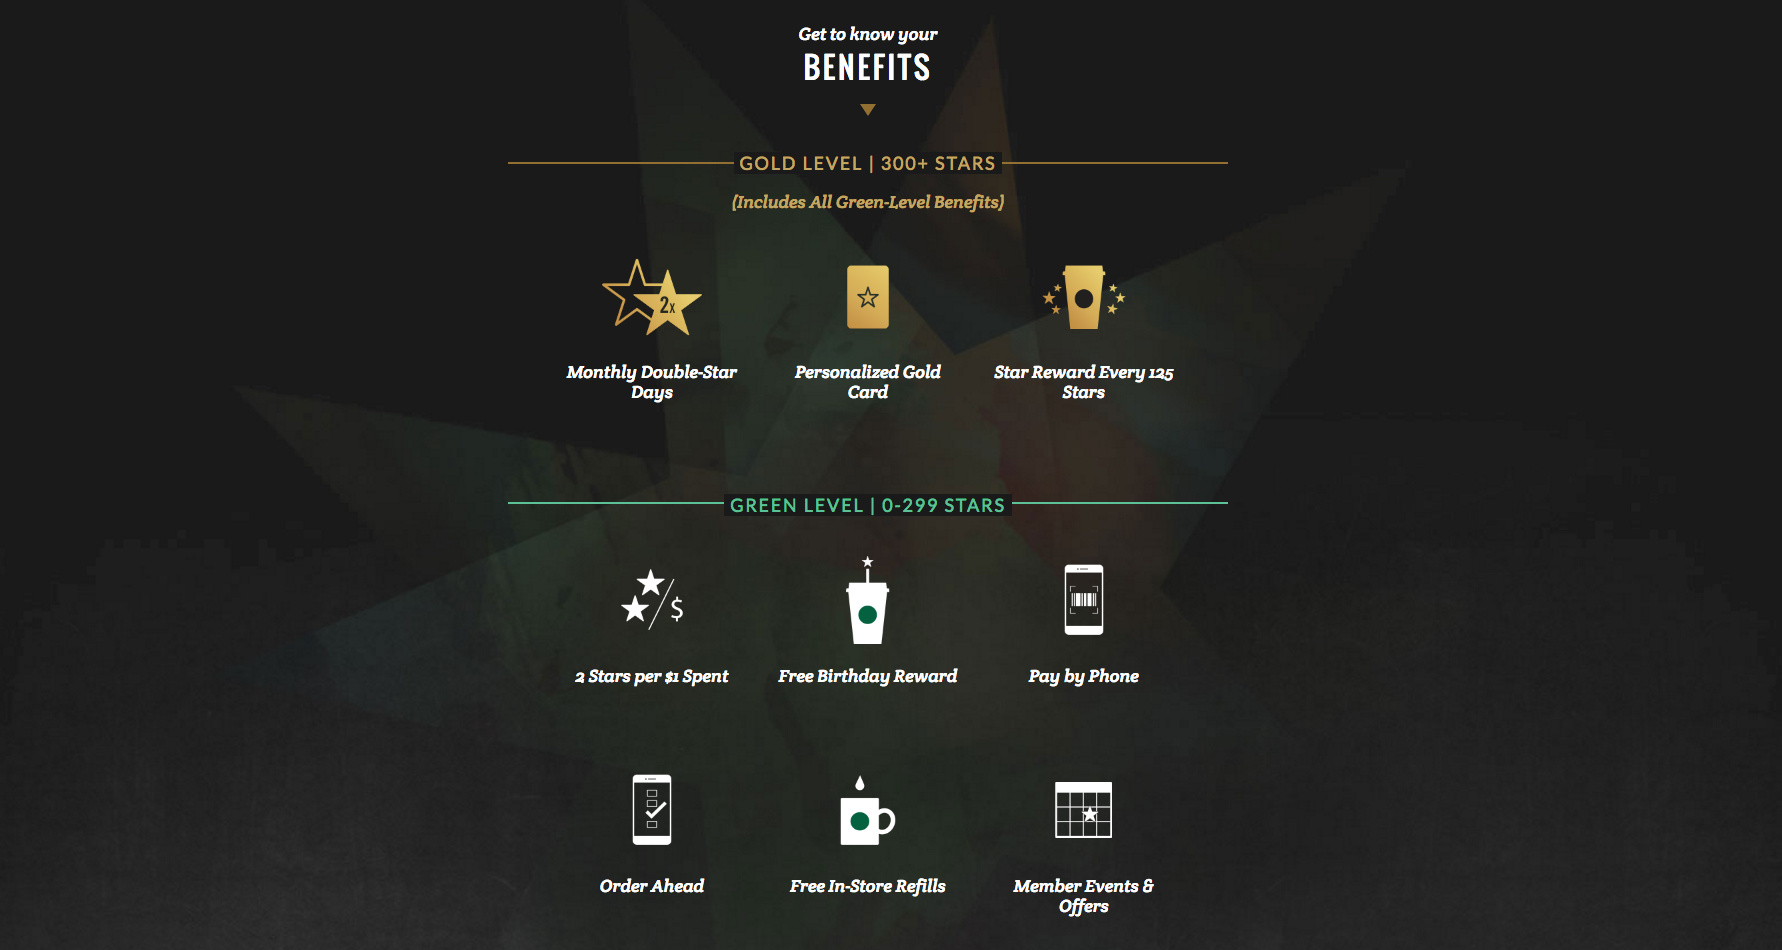 A screenshot of a section of Starbucks' rewards page